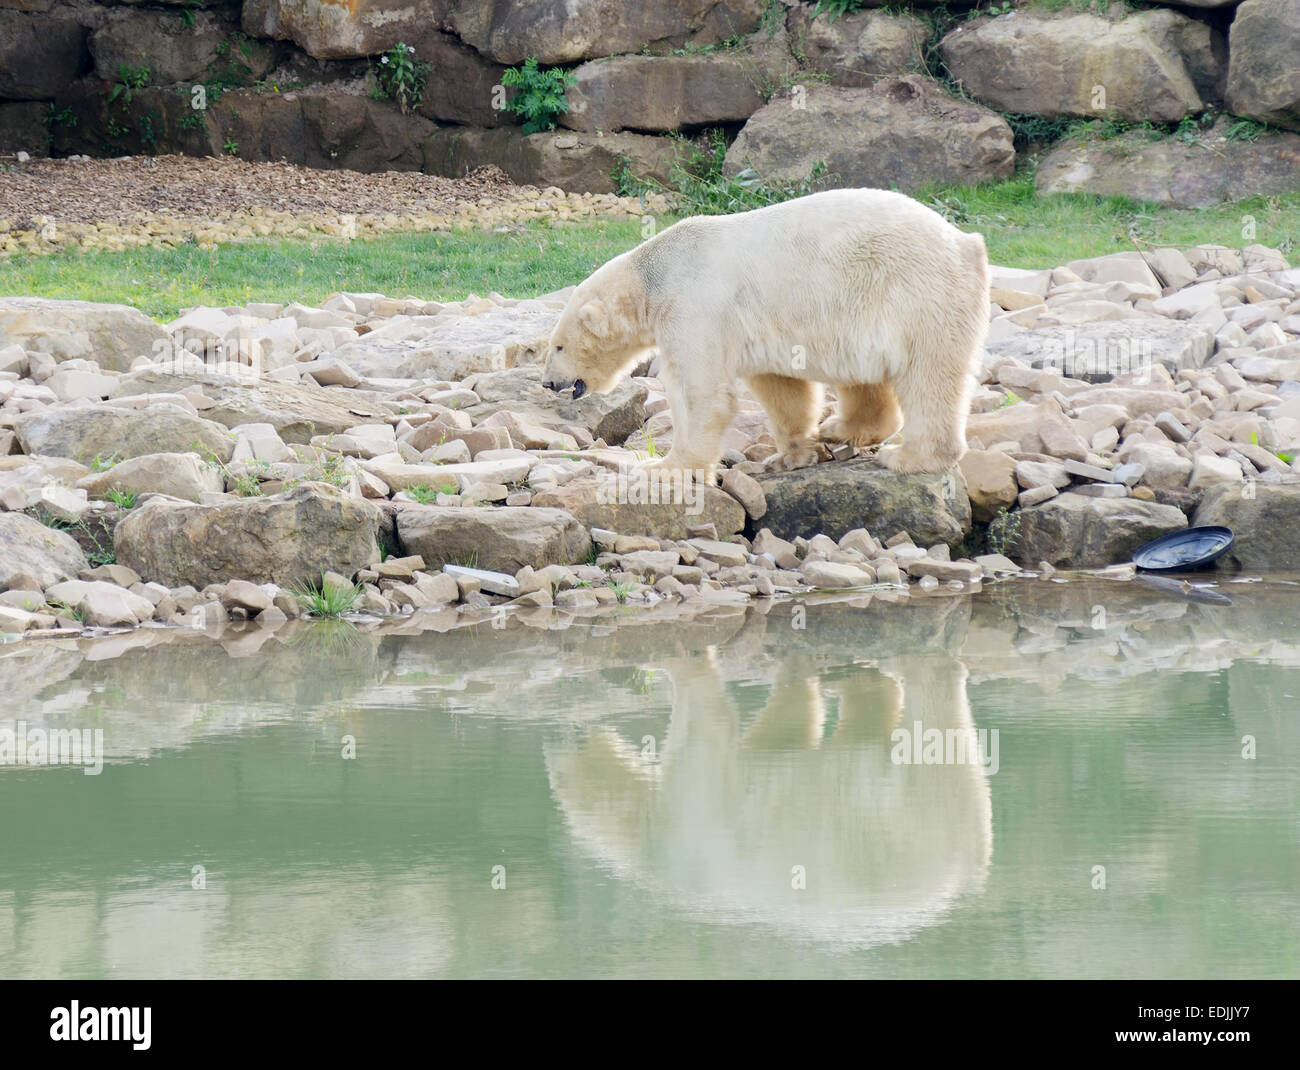 Polar bear by melted water with detritus and rubbish - Stock Image